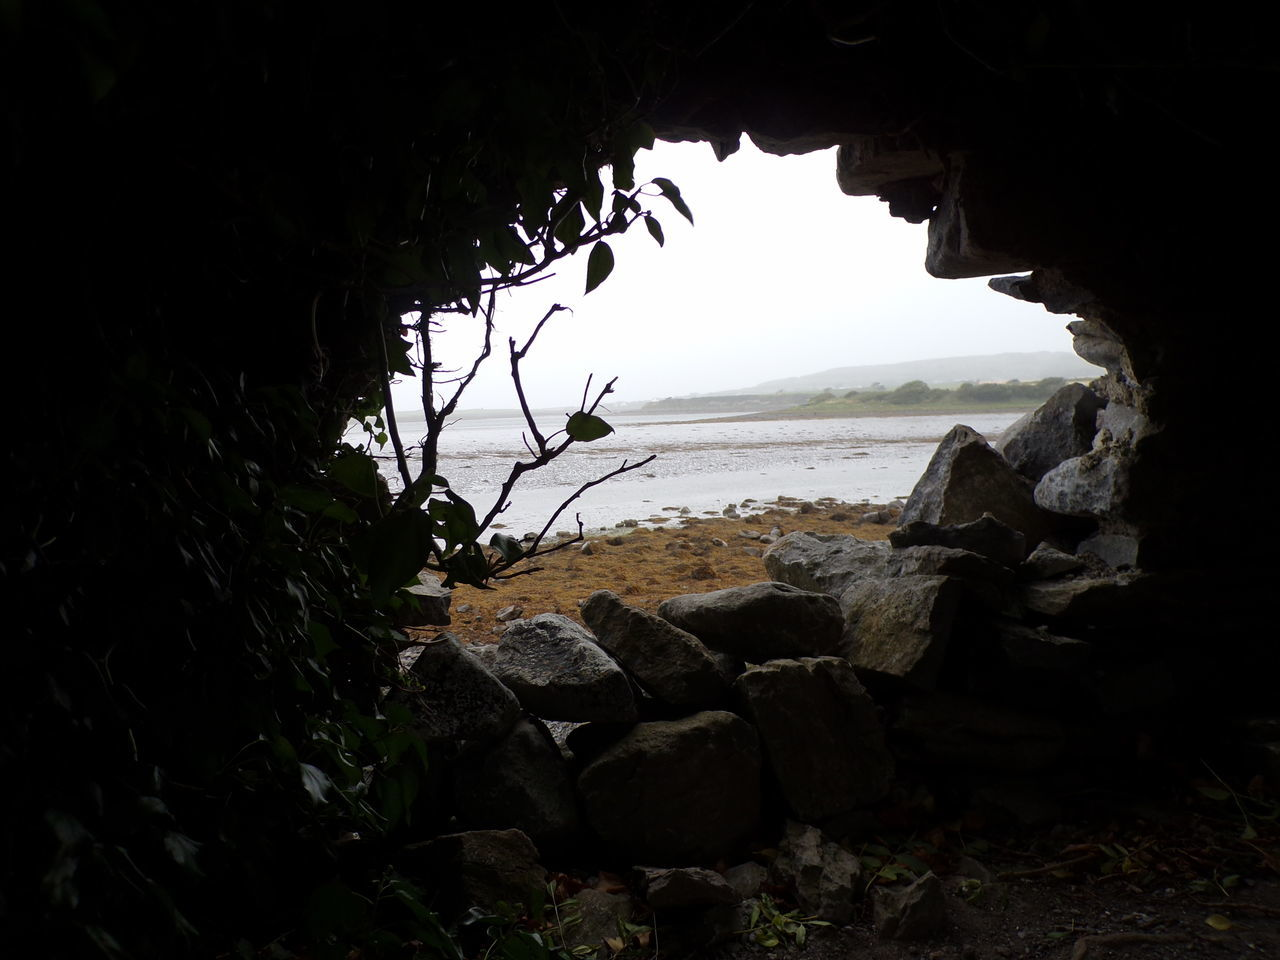 'Behind every stone wall, lies a secret' Beach Beauty In Nature Enjoying Life EyeEm EyeEm Best Shots Hidden Hidden Gems  Ireland Nature Nature On Your Doorstep Nature Photography No People Sea And Sky Seaside Secert Garden Secerts Stonewall Taking Photos Tranquil Tranquil Scene Water Waterfront Weather Wet Day Wet Hair First Eyeem Photo